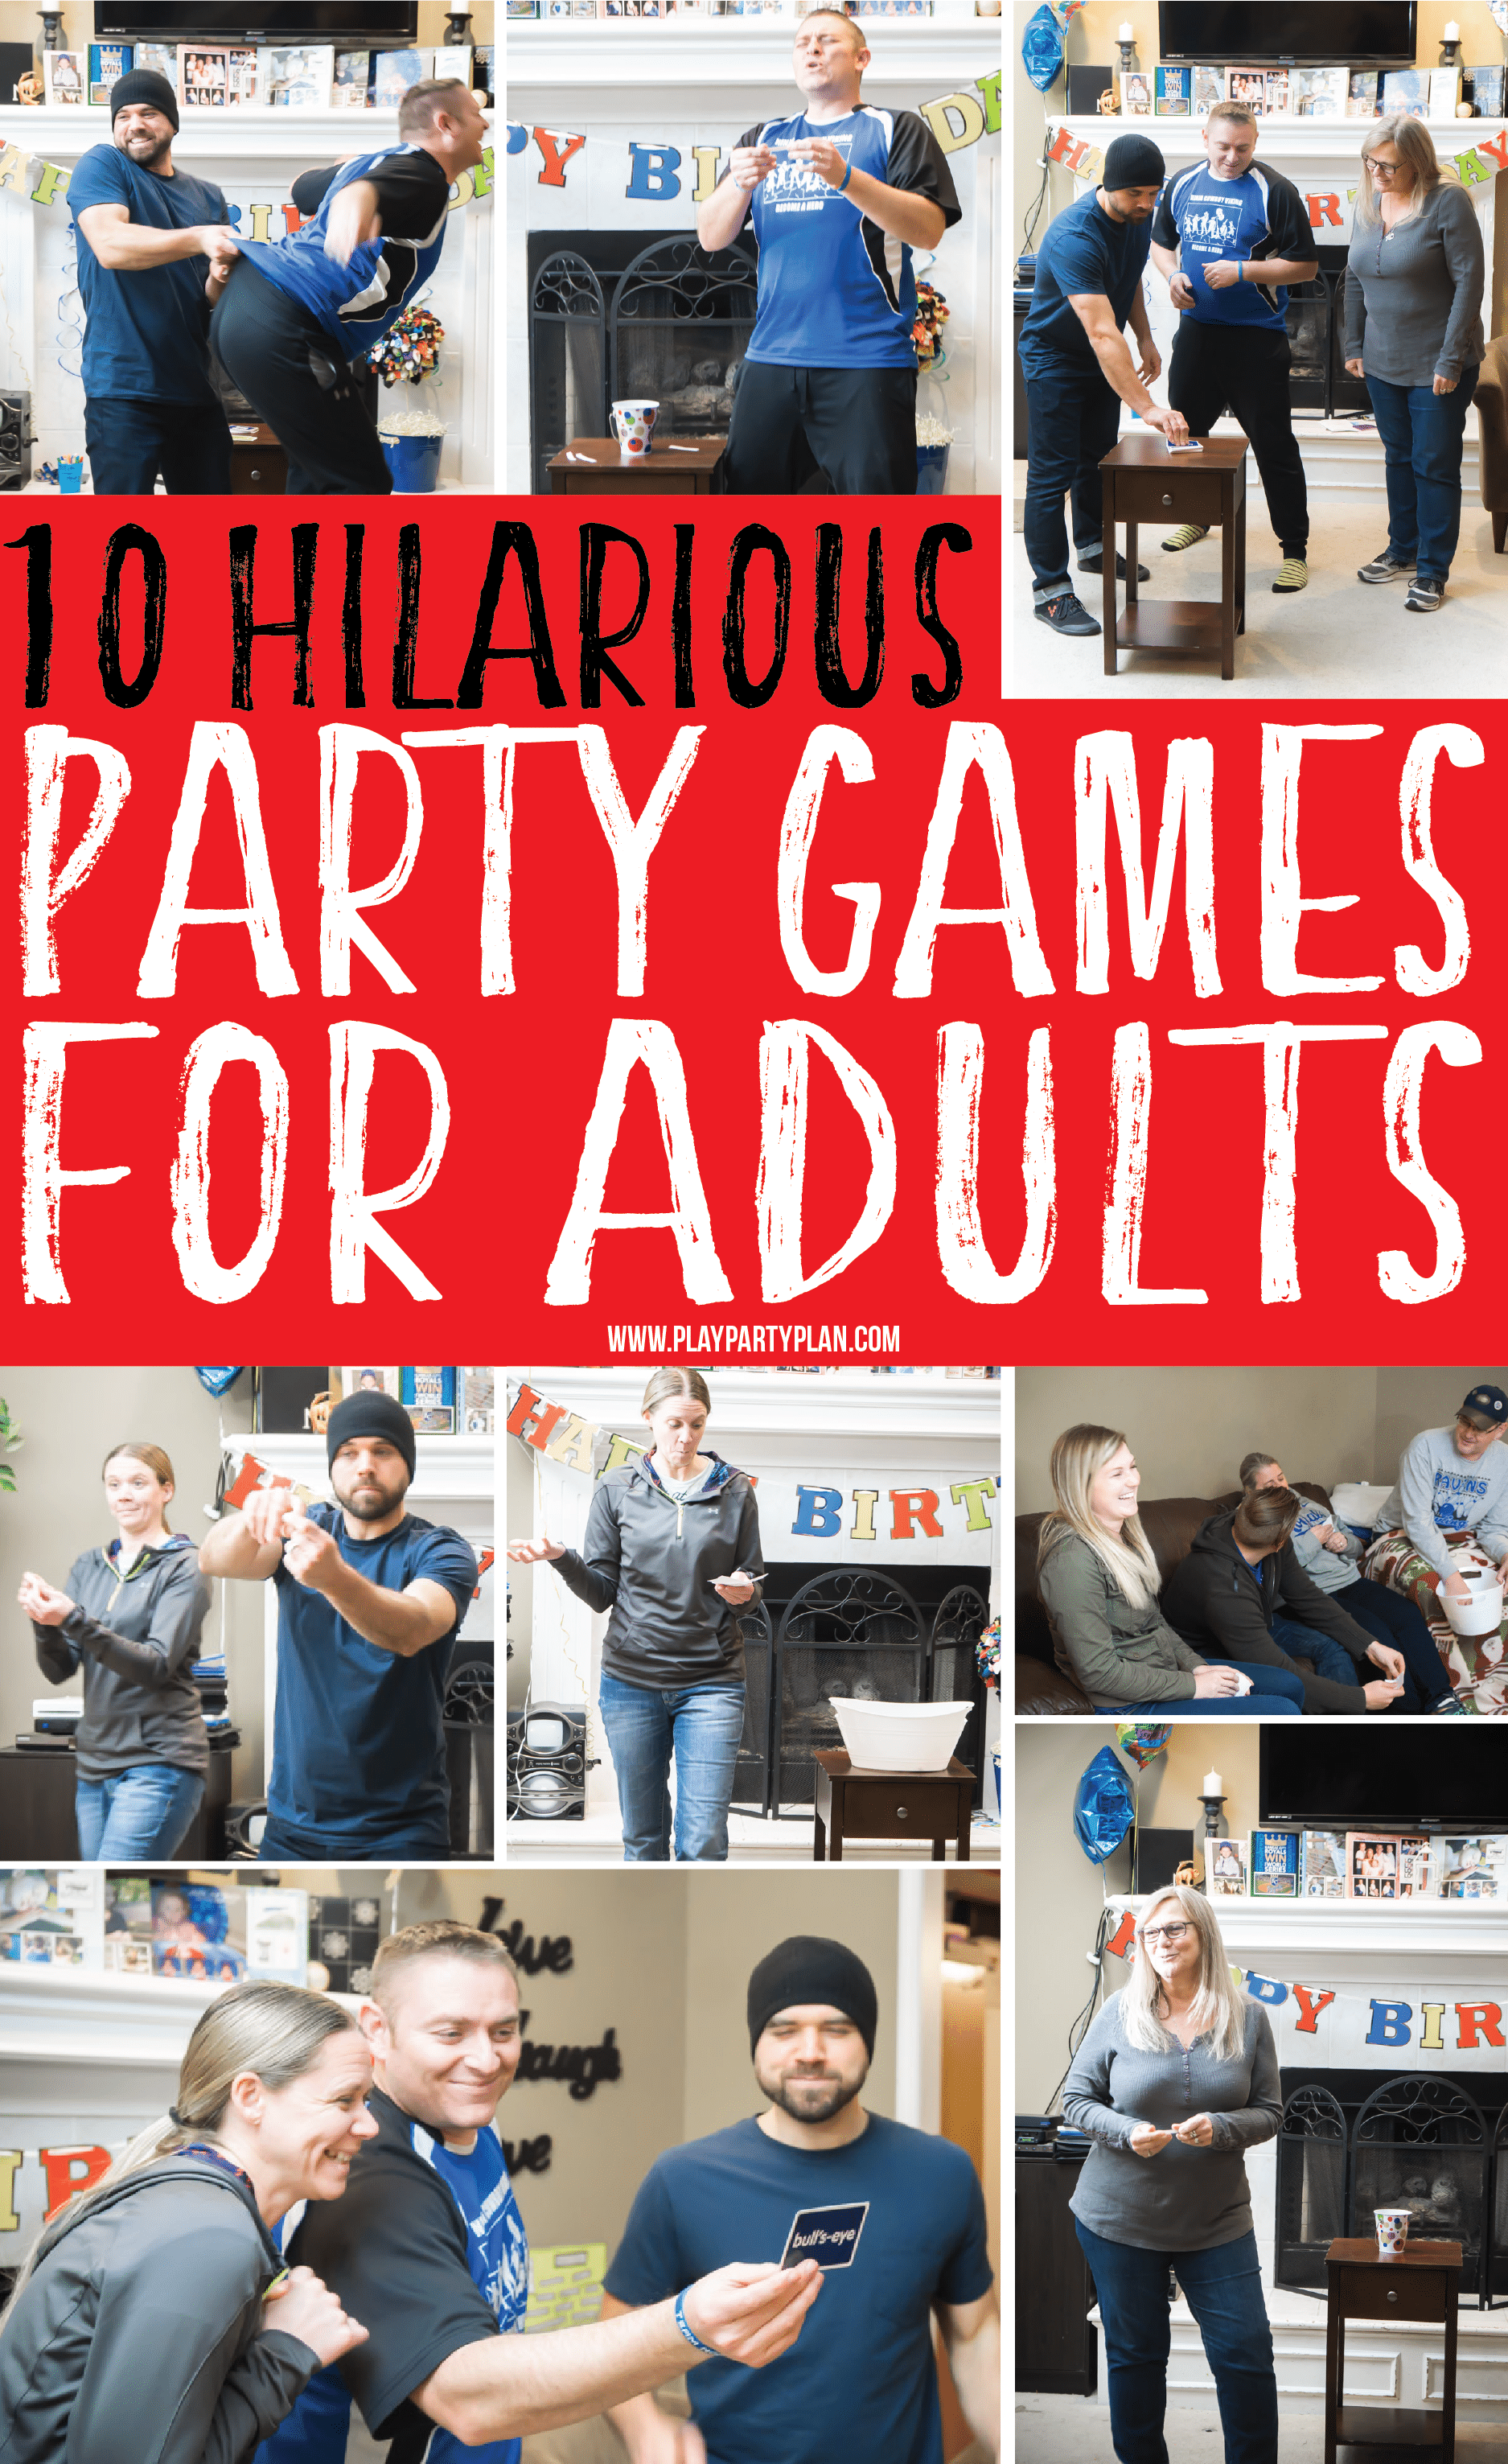 f03bd9f7bea7 10 hilarious party games for adults that would work great for teens or for  groups too